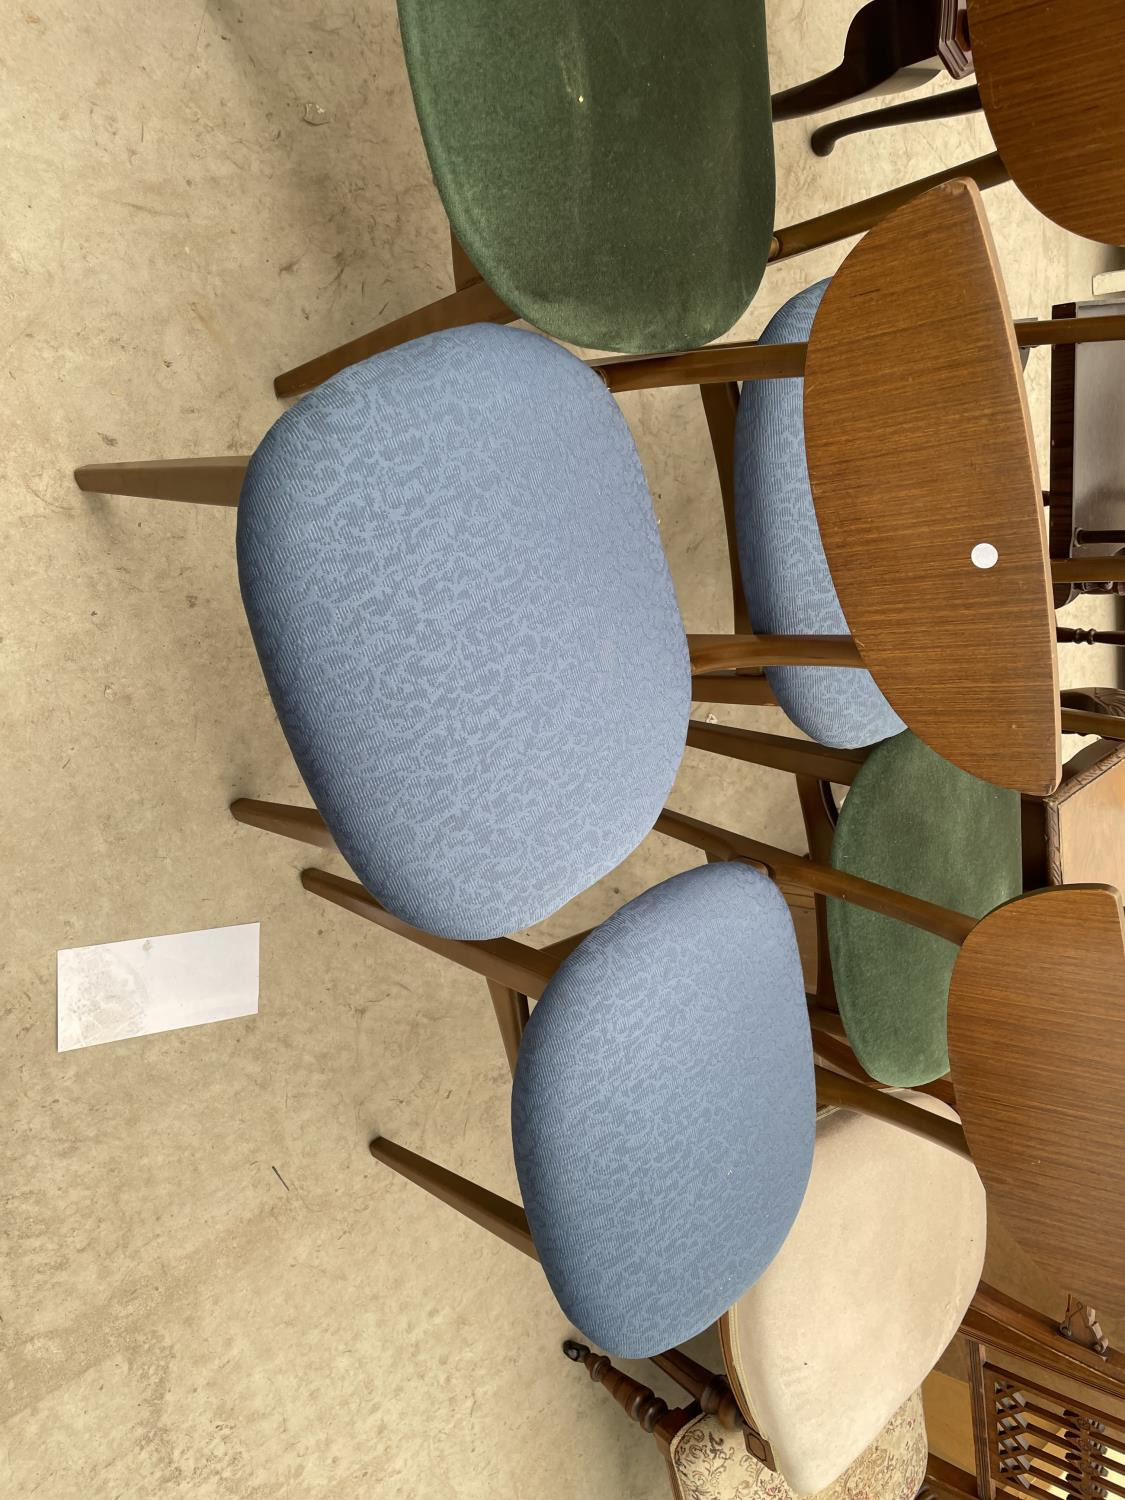 A SET OF FIVE MID 20TH CENTURY STYLE DINING CHAIRS WITH WHALE FIN BACKS - Image 3 of 10